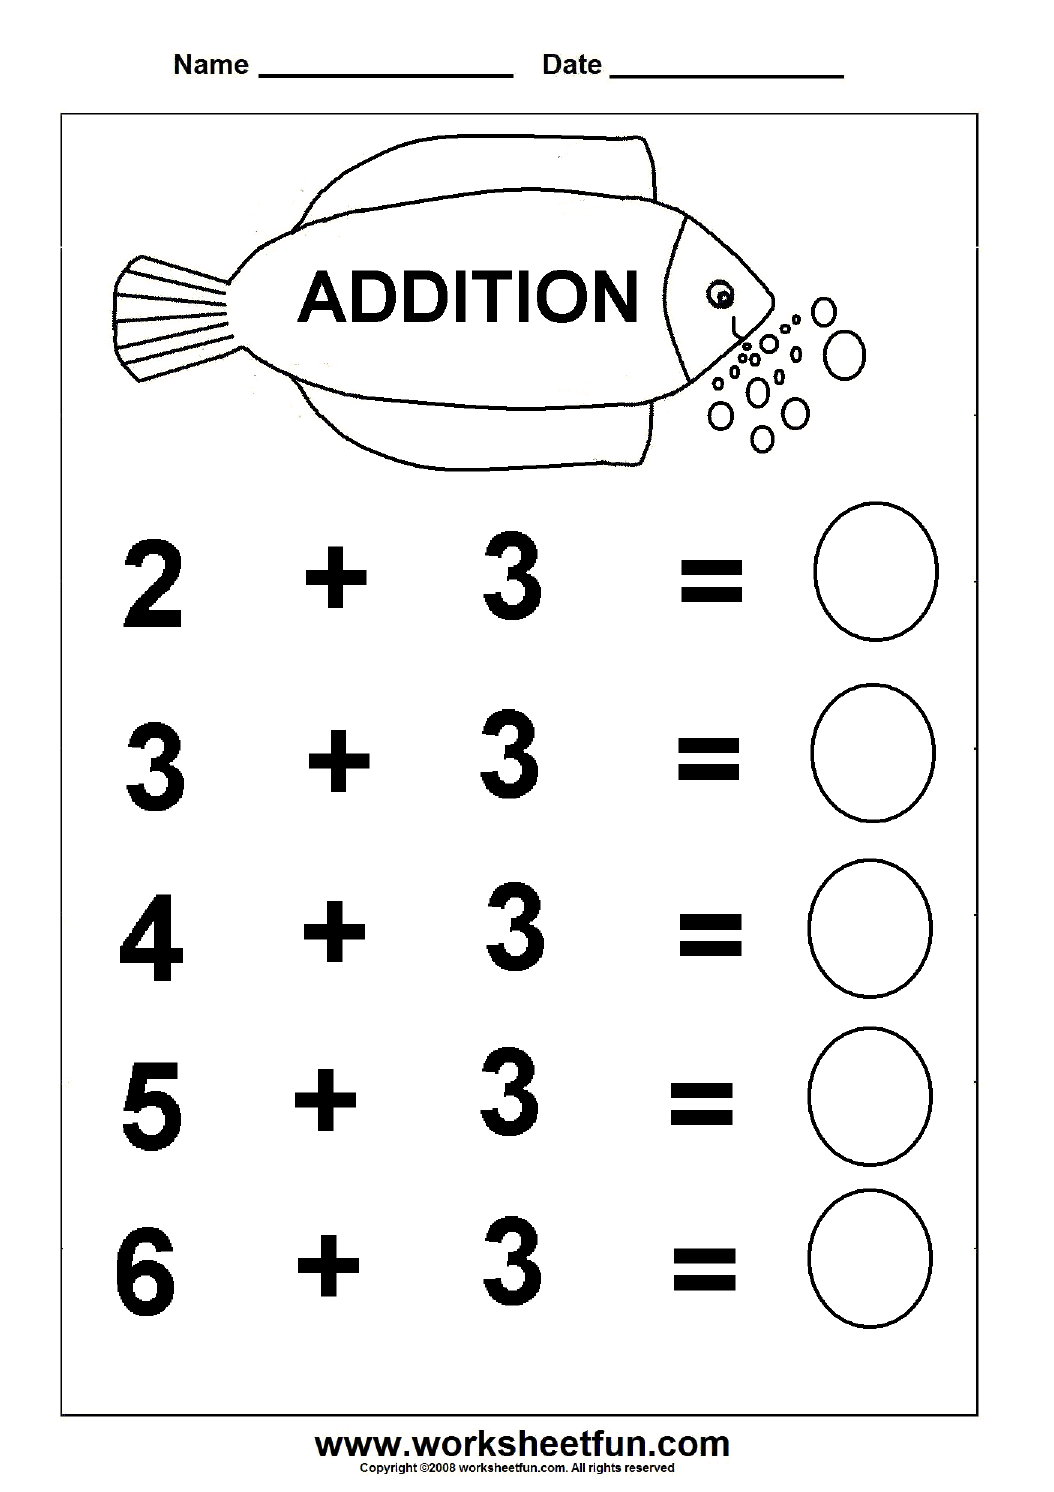 Addition on ten frame addition practice printable worksheet